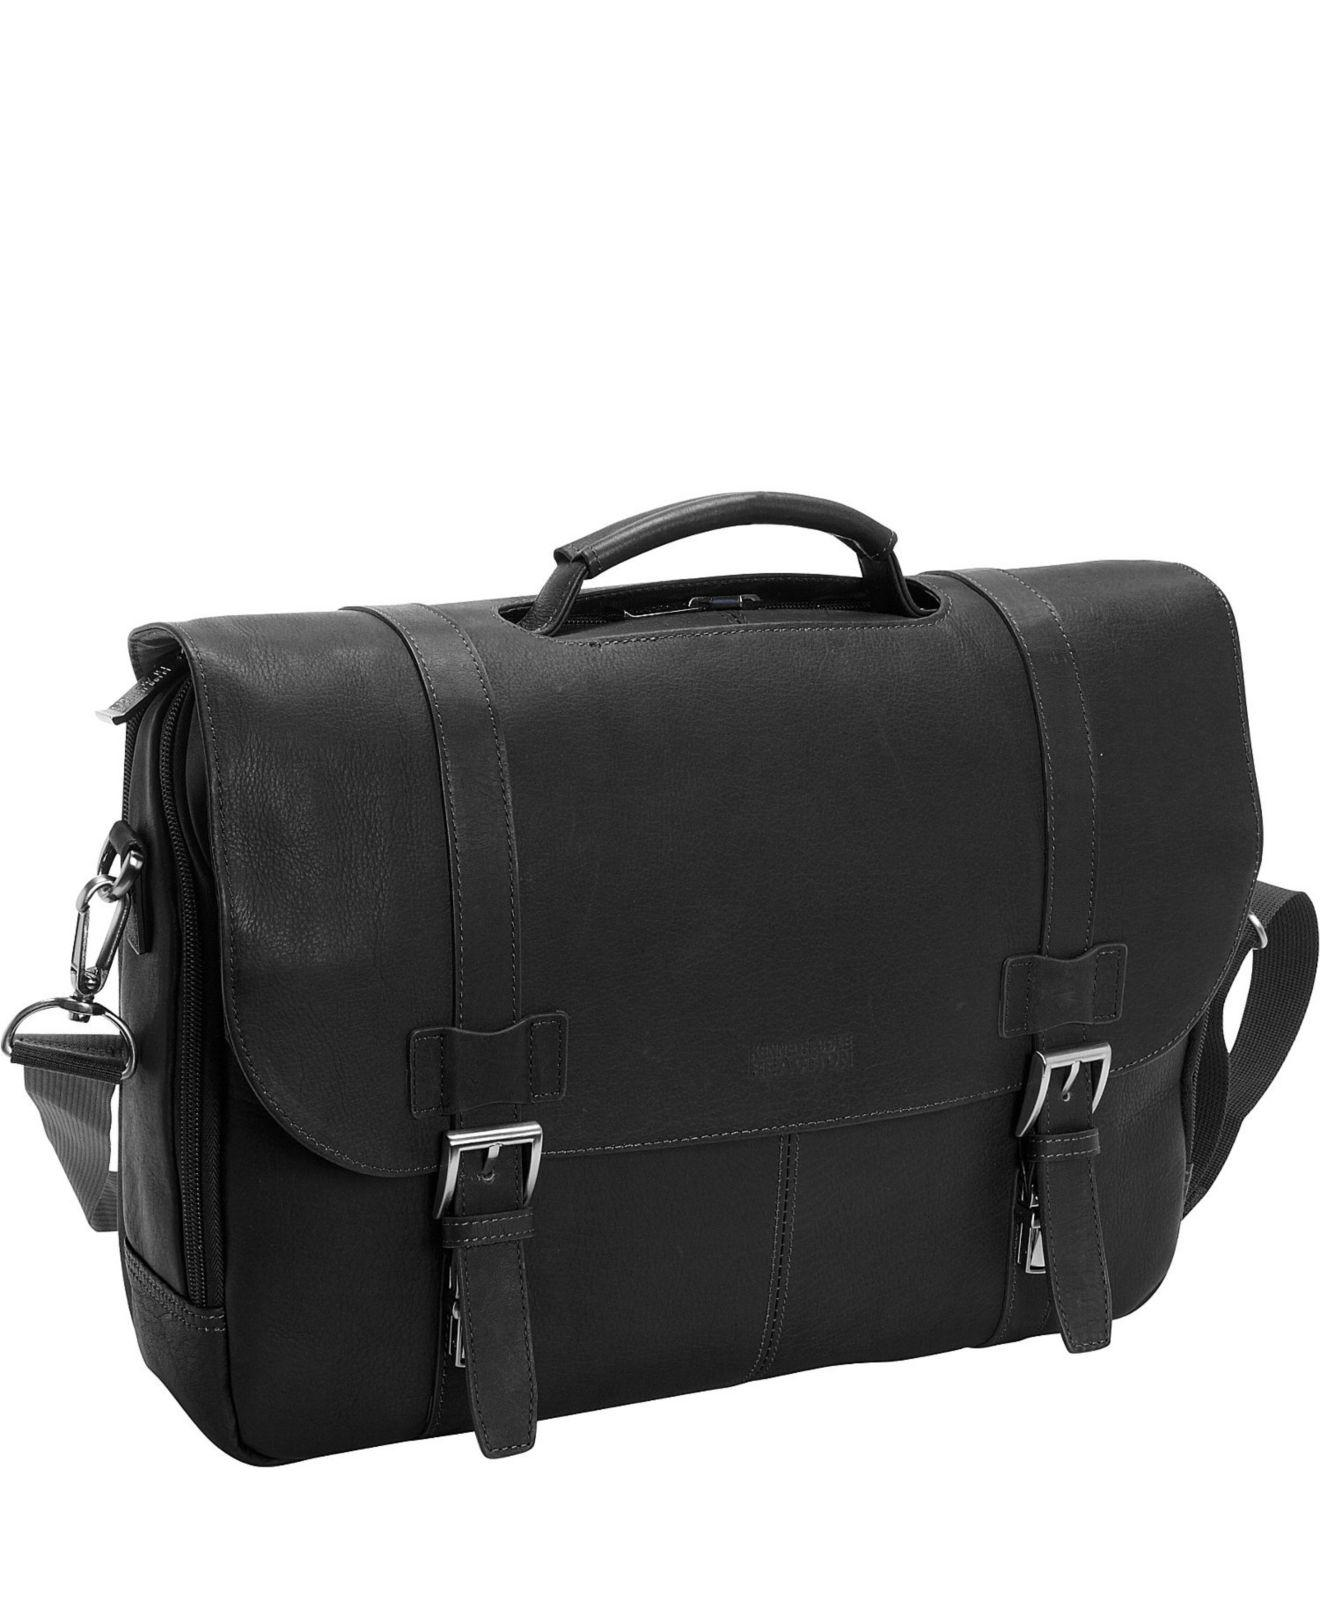 7f6ecc0b7 Leather Flapover Laptop Backpack | The Shred Centre